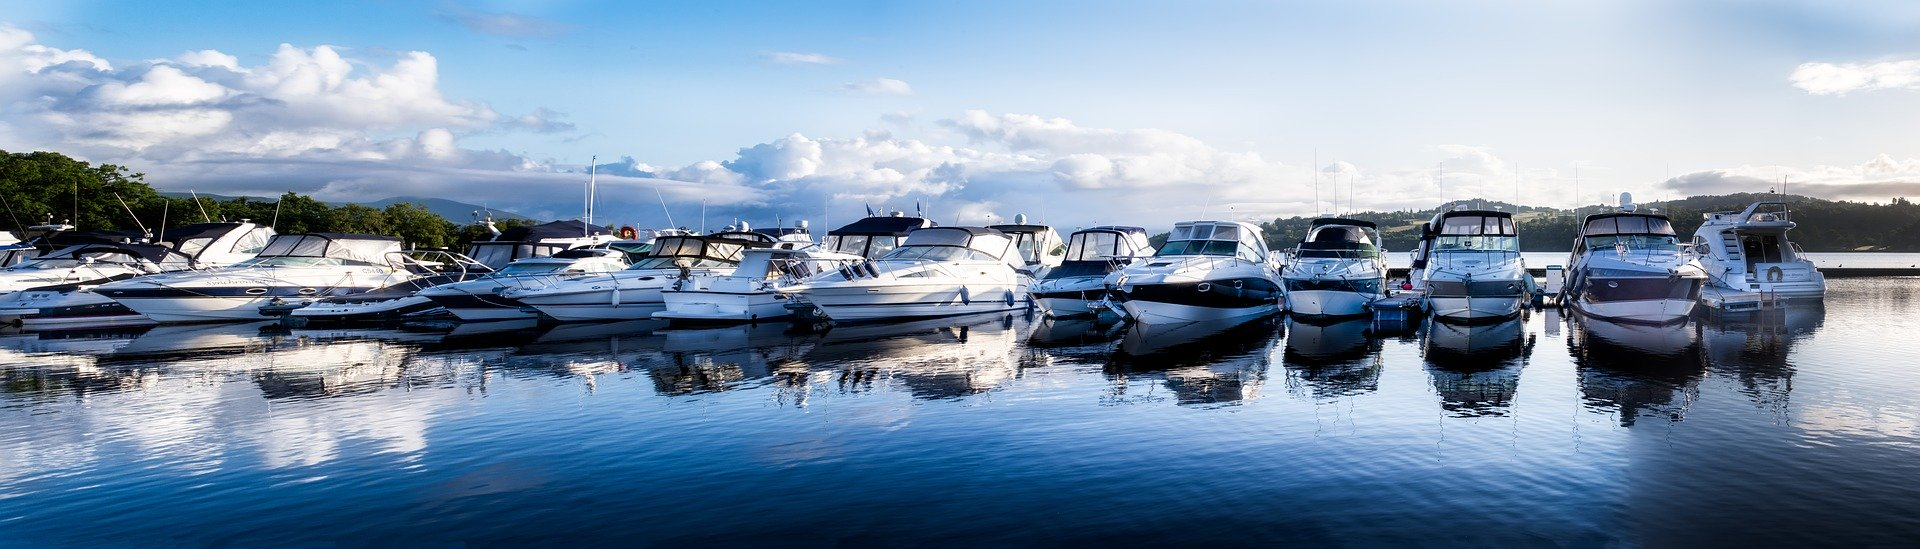 6 Luxury Locations to Take Your Motor Cruiser